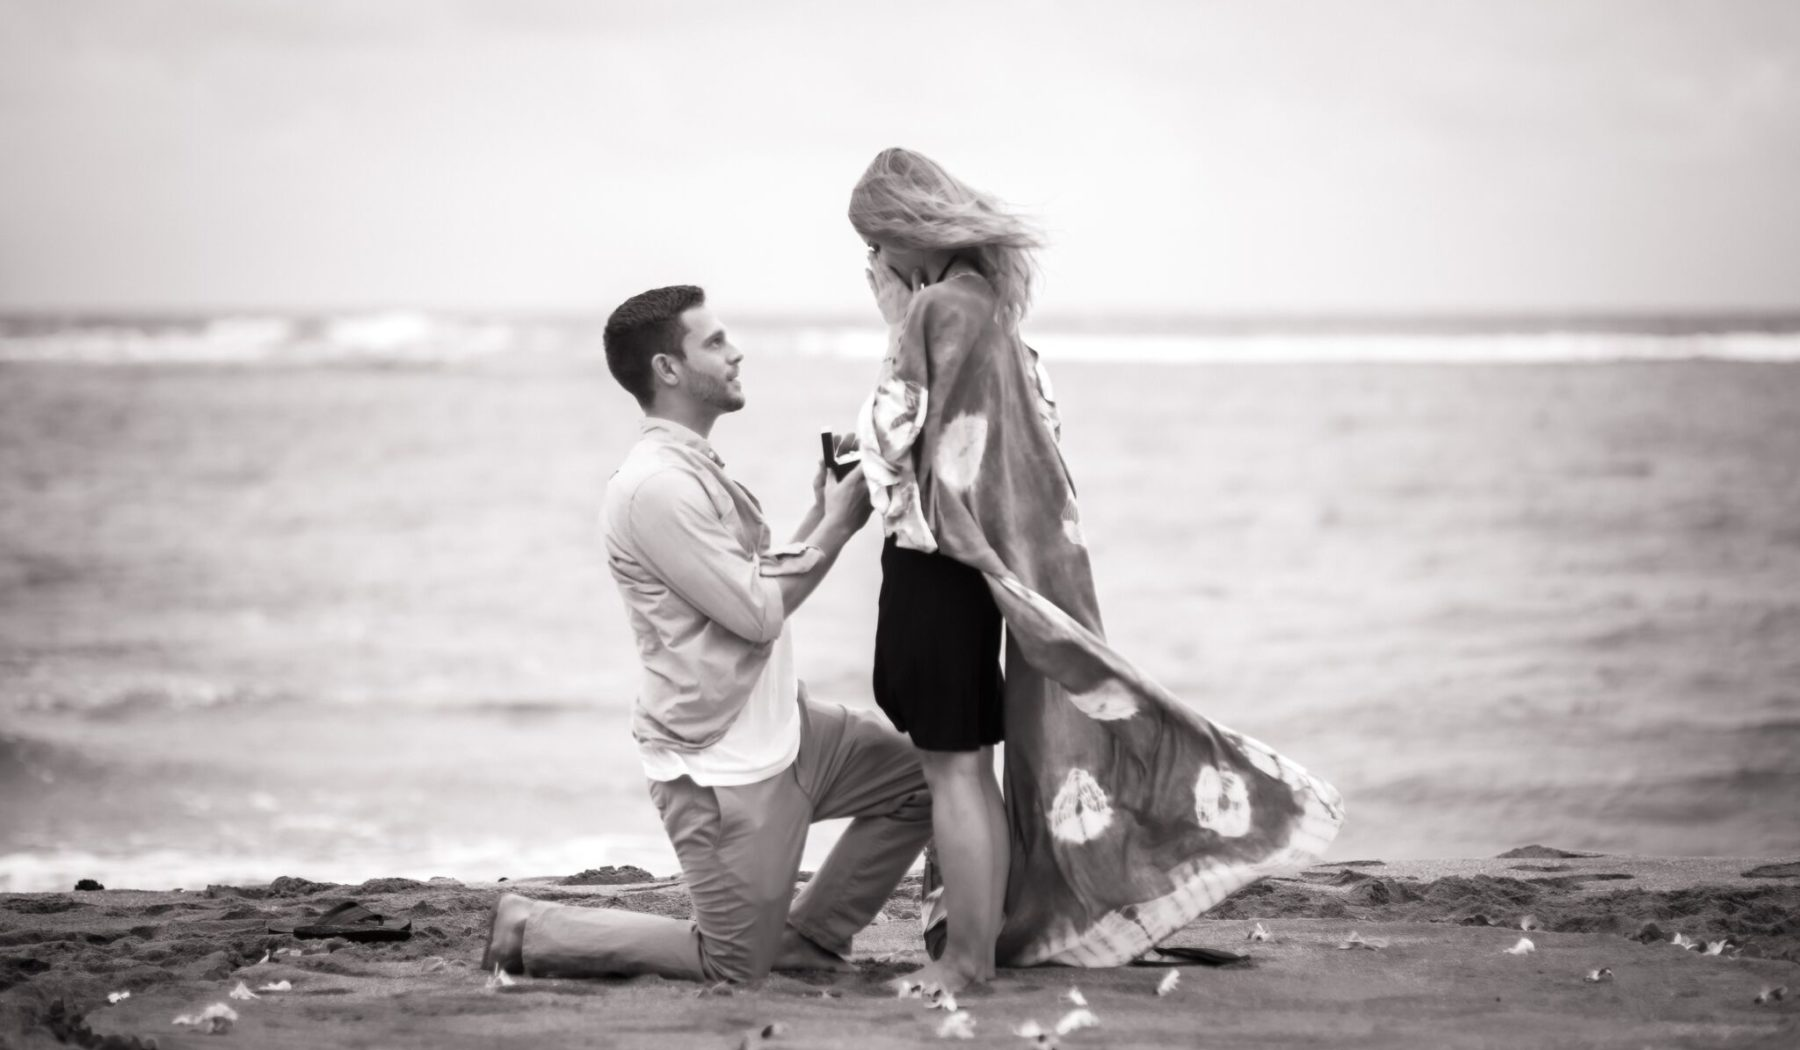 Black and white proposal photograph.